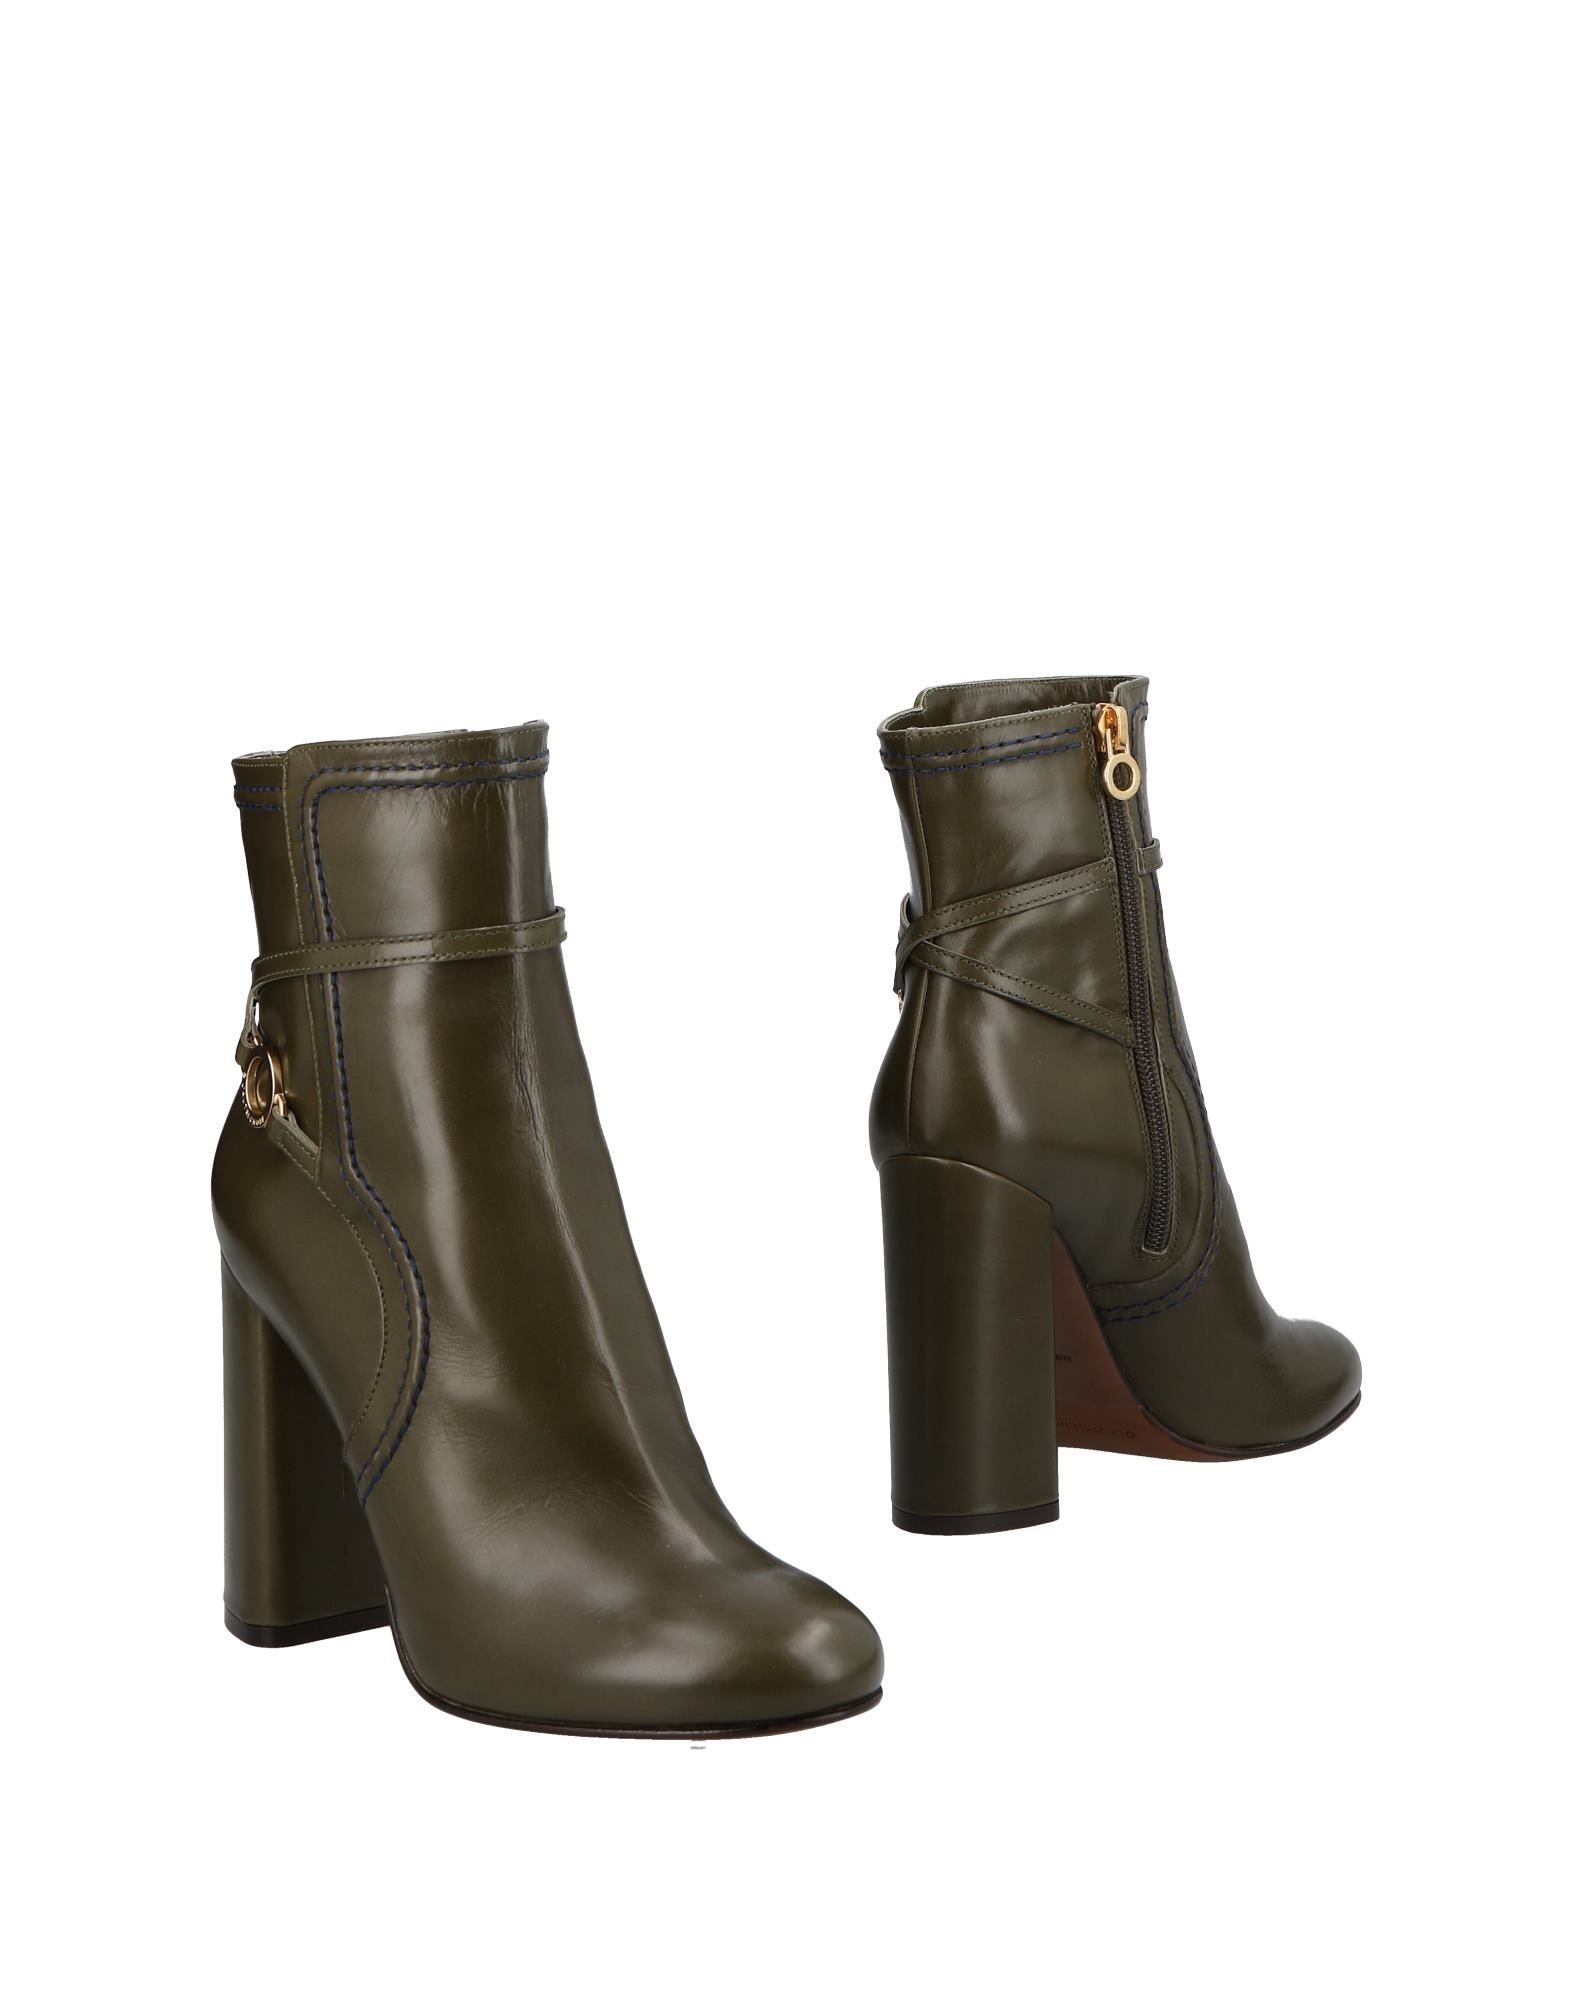 L' Autre Chose Military Green Calf Leather Ankle Boots